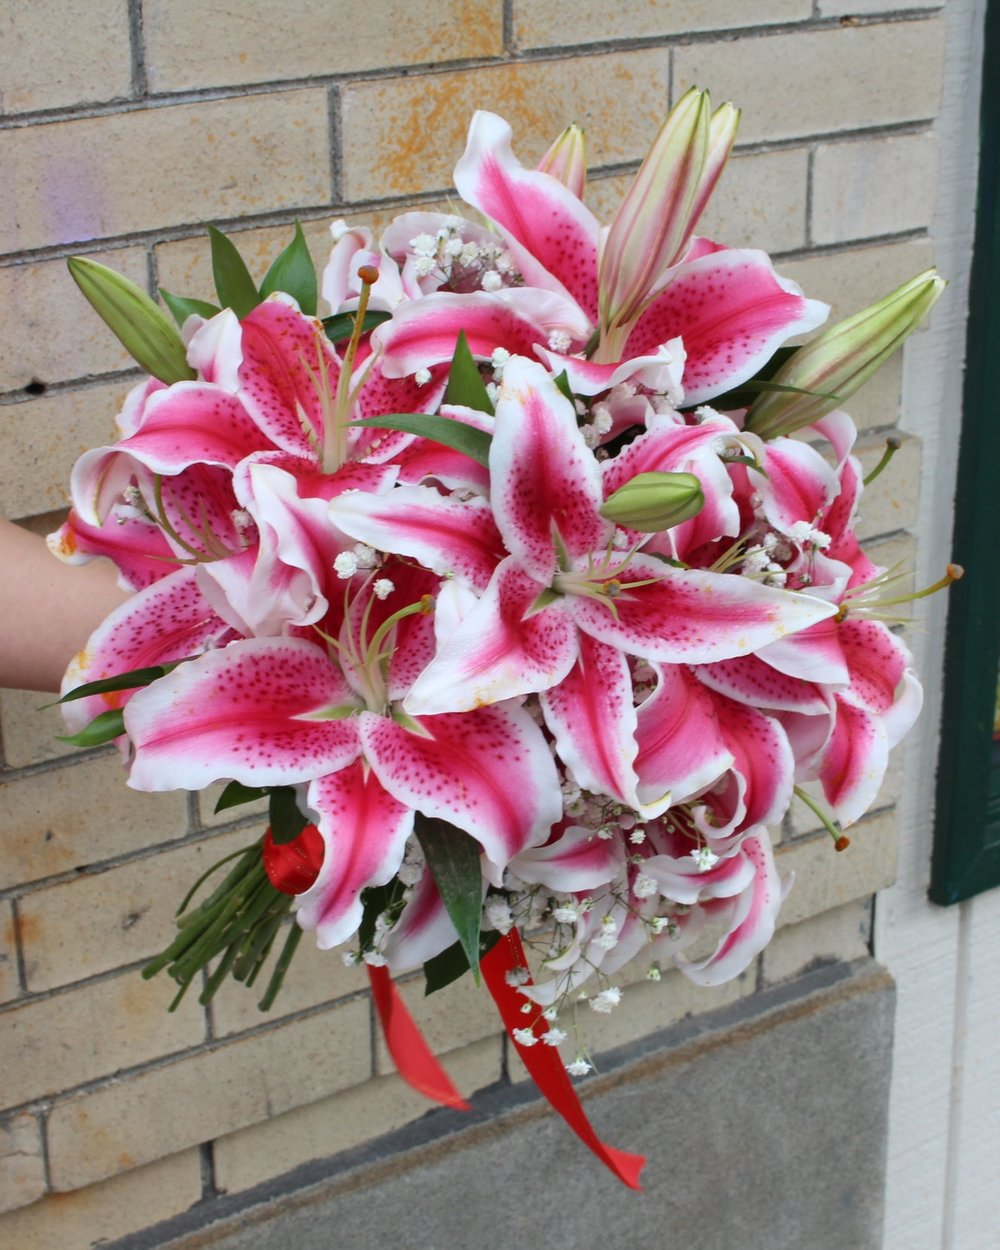 Starfighter Lily Bouquet